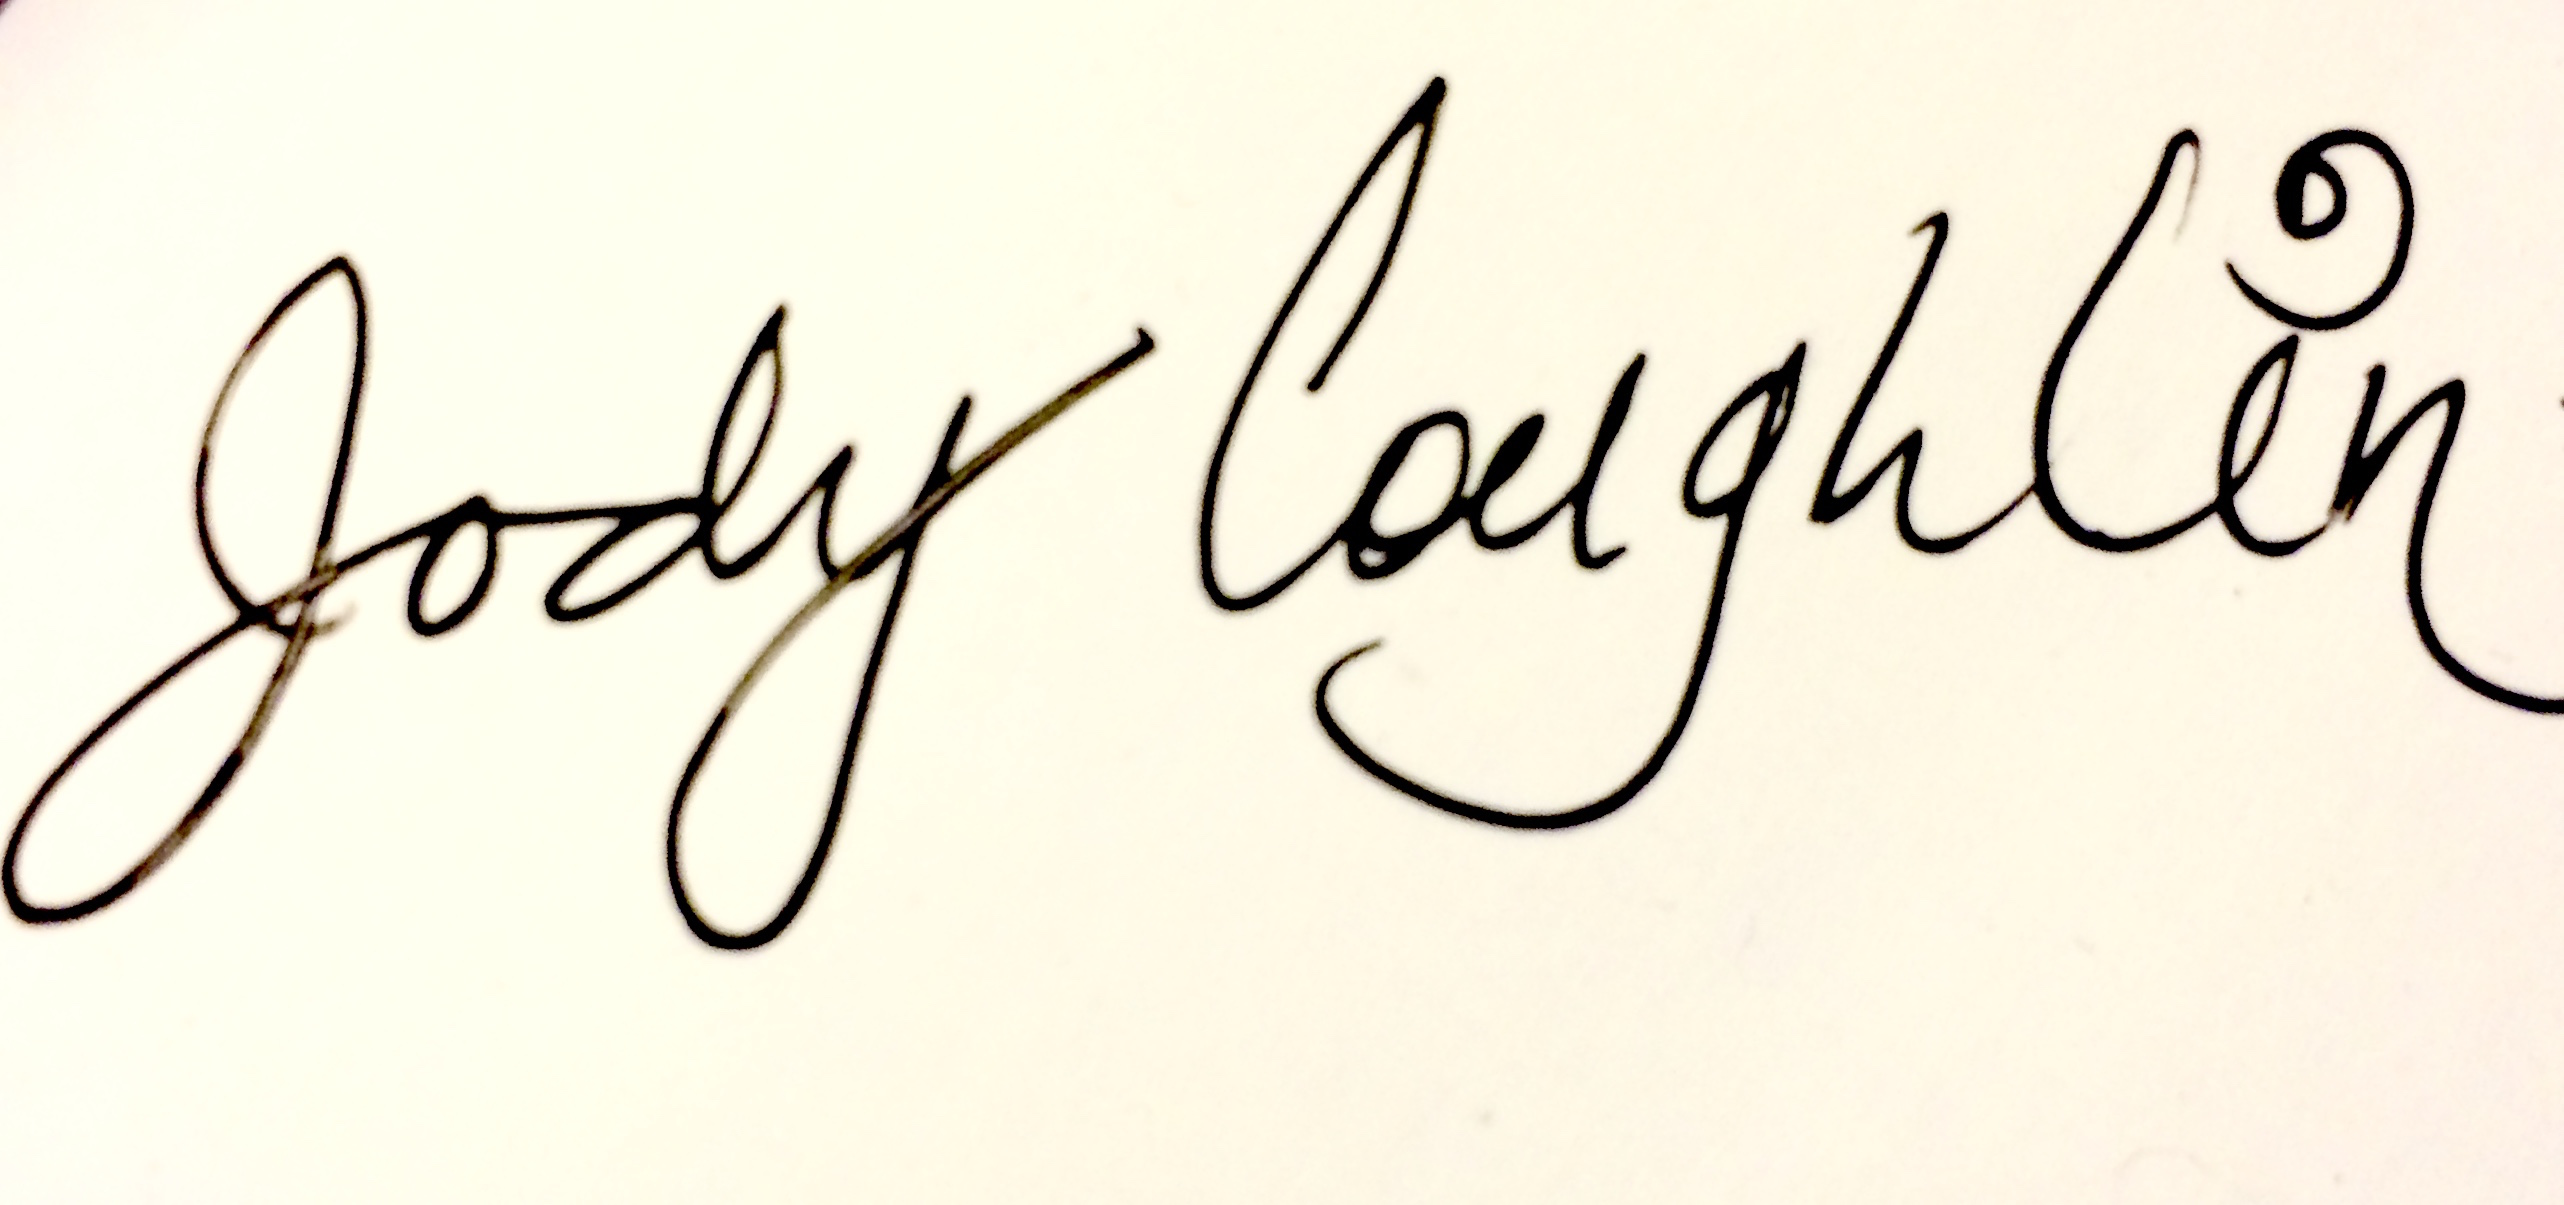 Jody Coughlin Signature